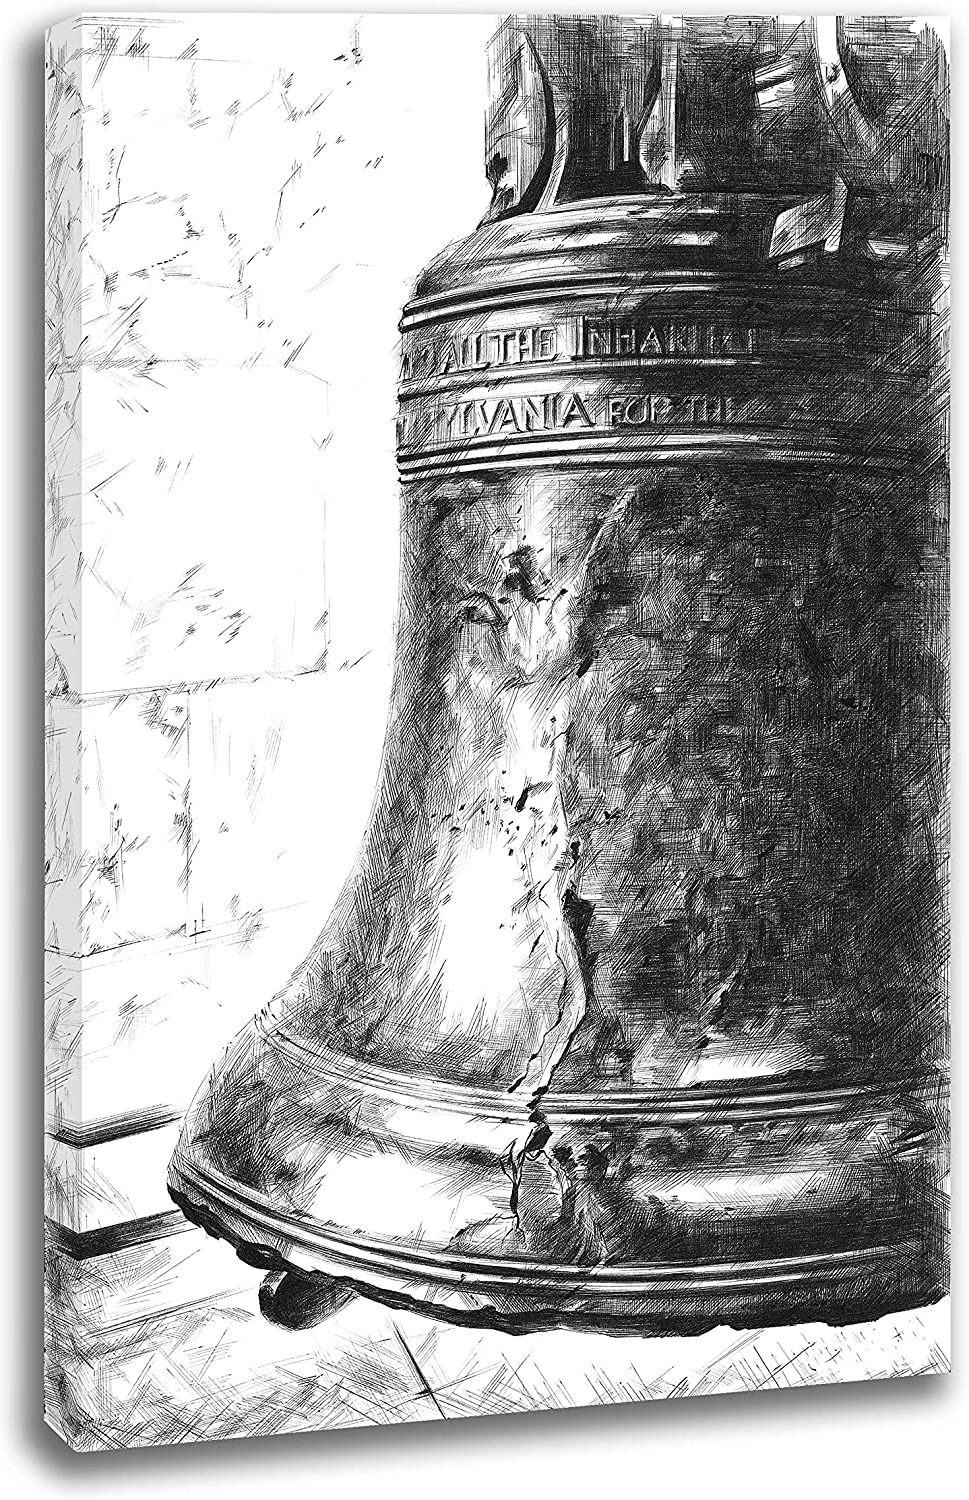 INTALENCE ART Unique Liberty Bell Philadelphia Black and White Wall Decor, 8x12in American Symbol Wall Art, Premium Print on Canvas, Modern Home and Office Picture Decoration, Easy and Ready to Hang.